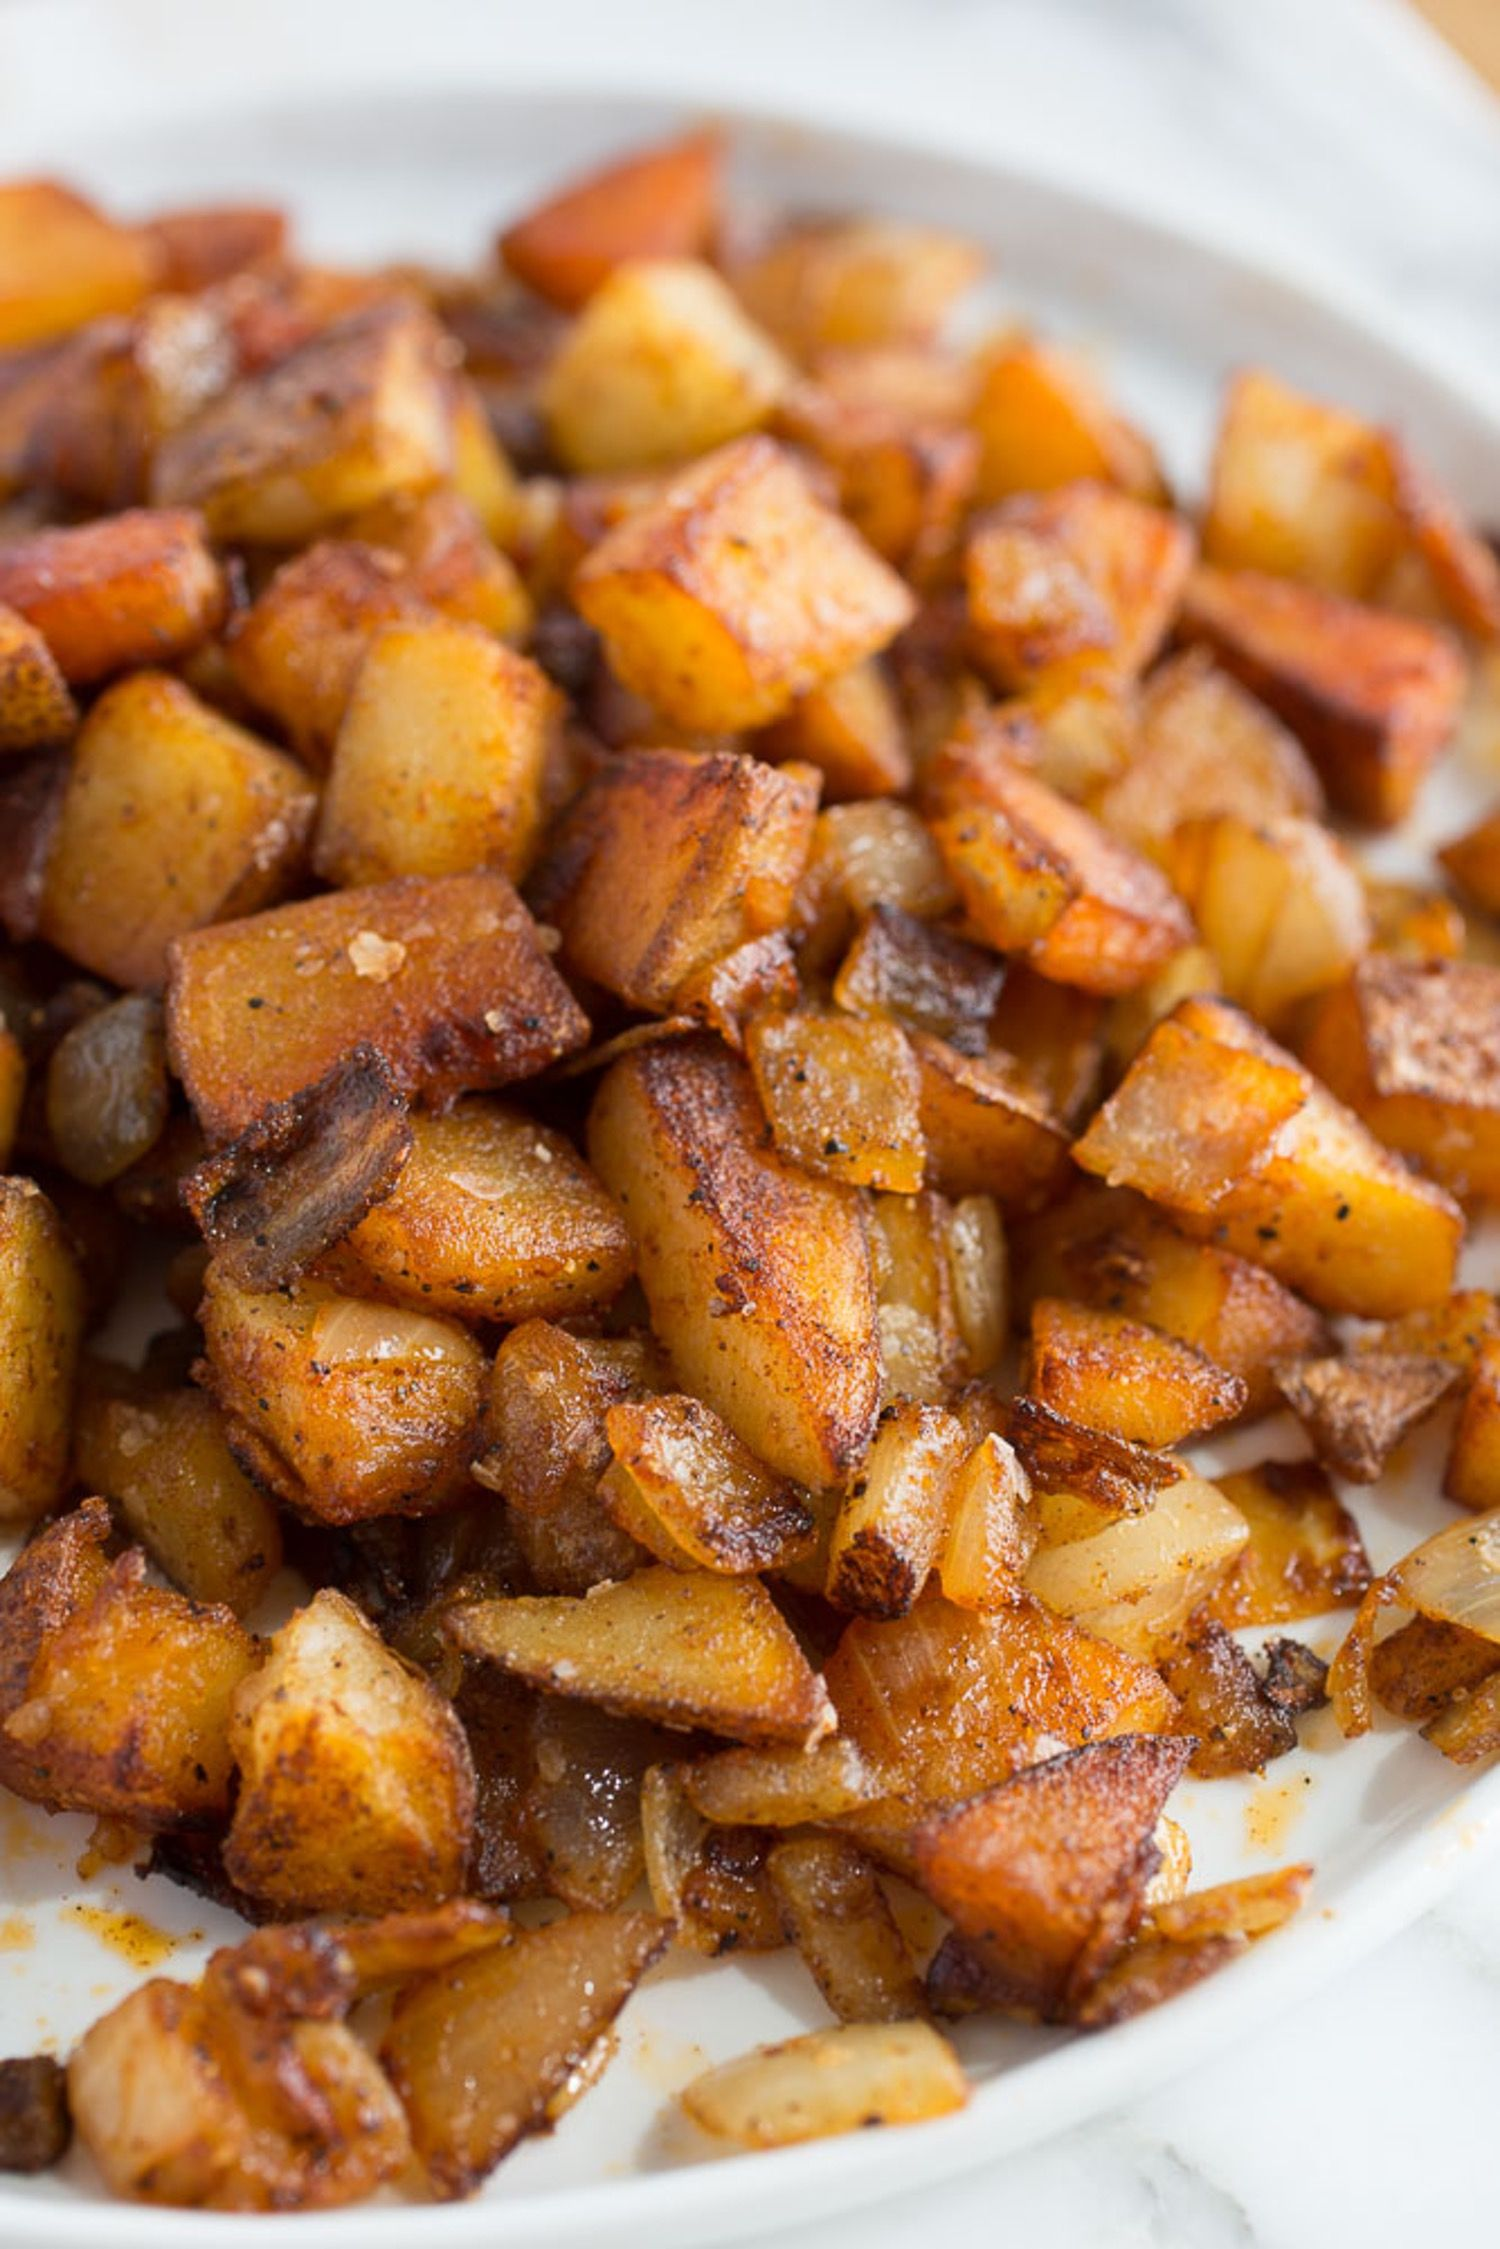 How To Make Home Fries Recipe Fries Diners And Food